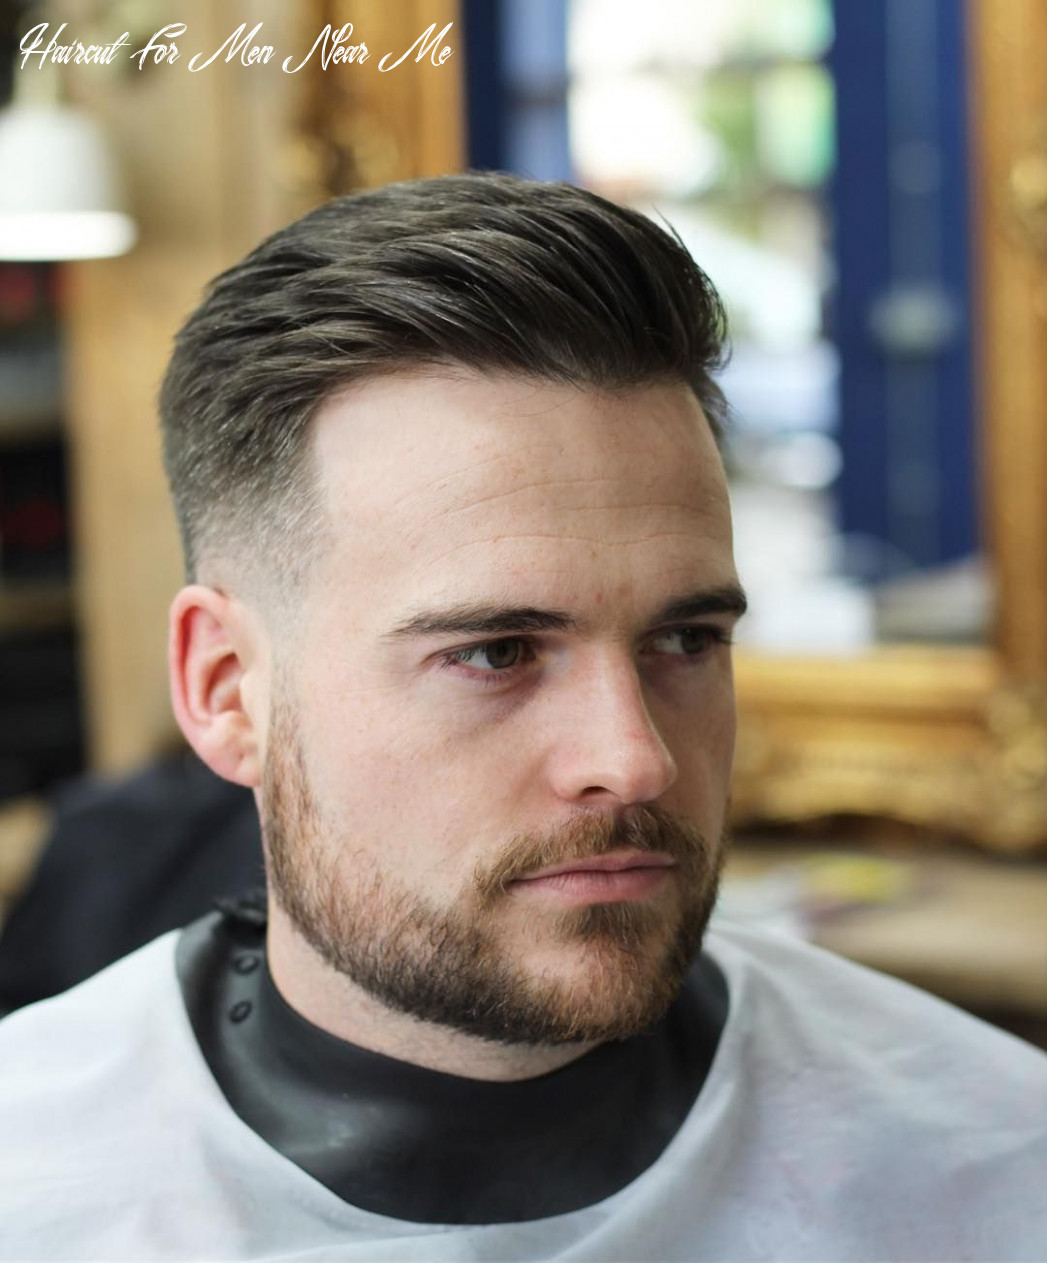 Pin on best barbers map haircut for men near me